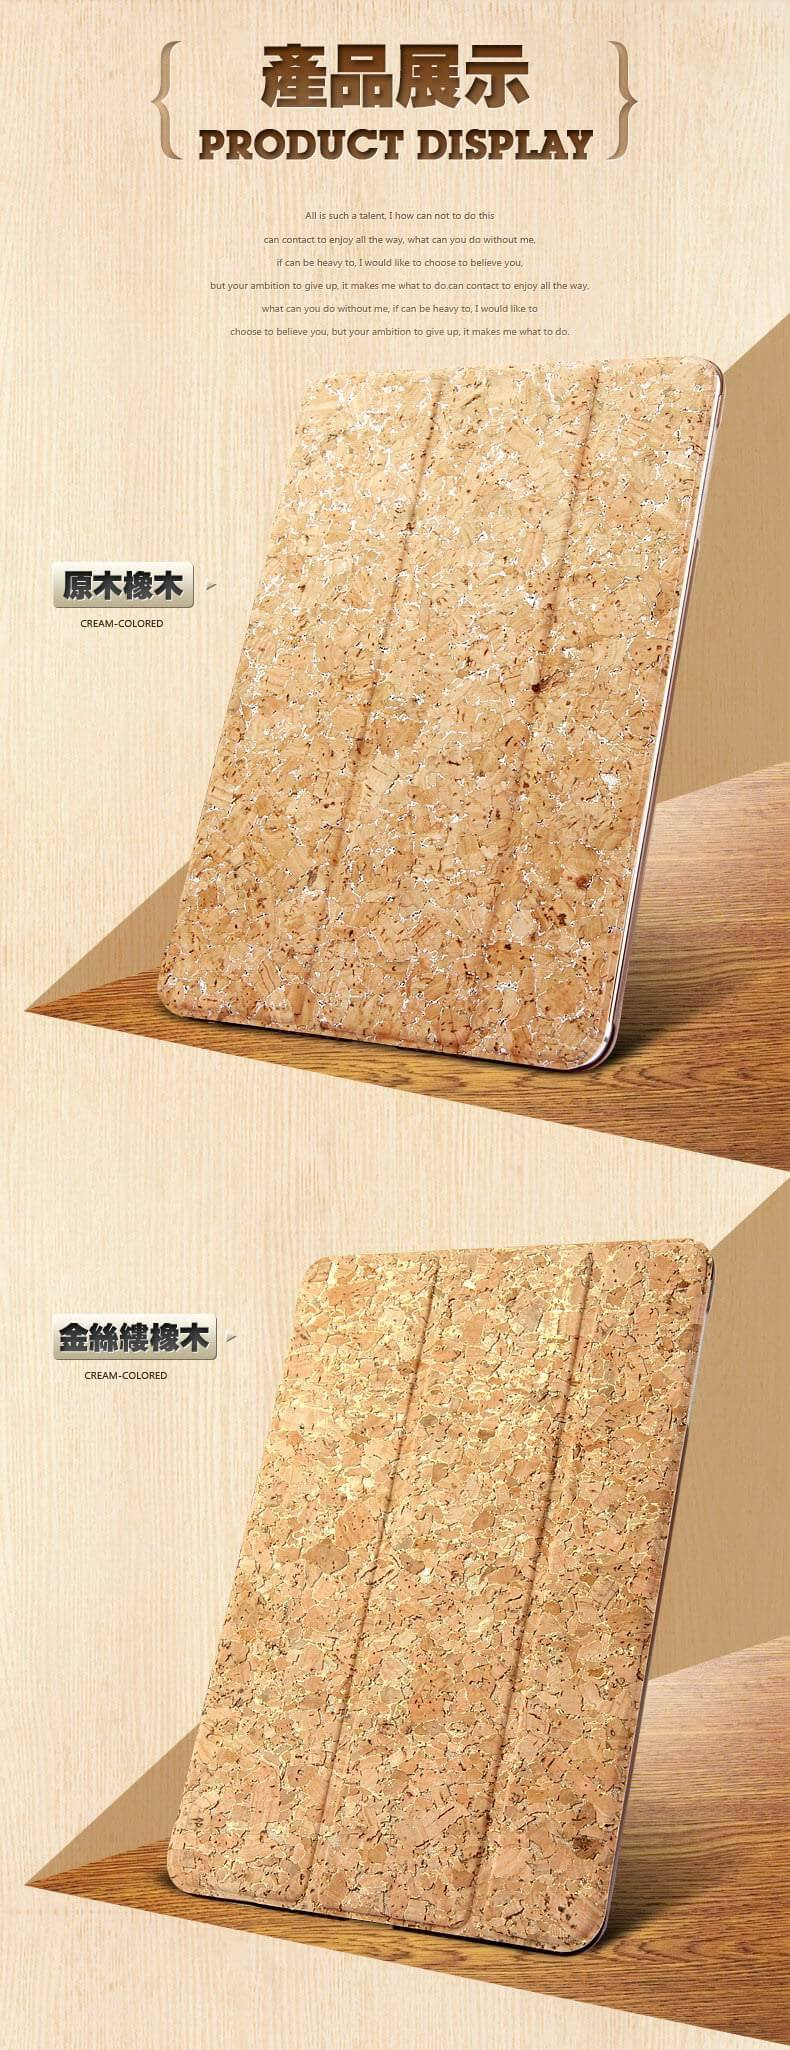 Case with cork oak pattern for Apple iPad Mini 1, iPad Mini 2, iPad Mini 3